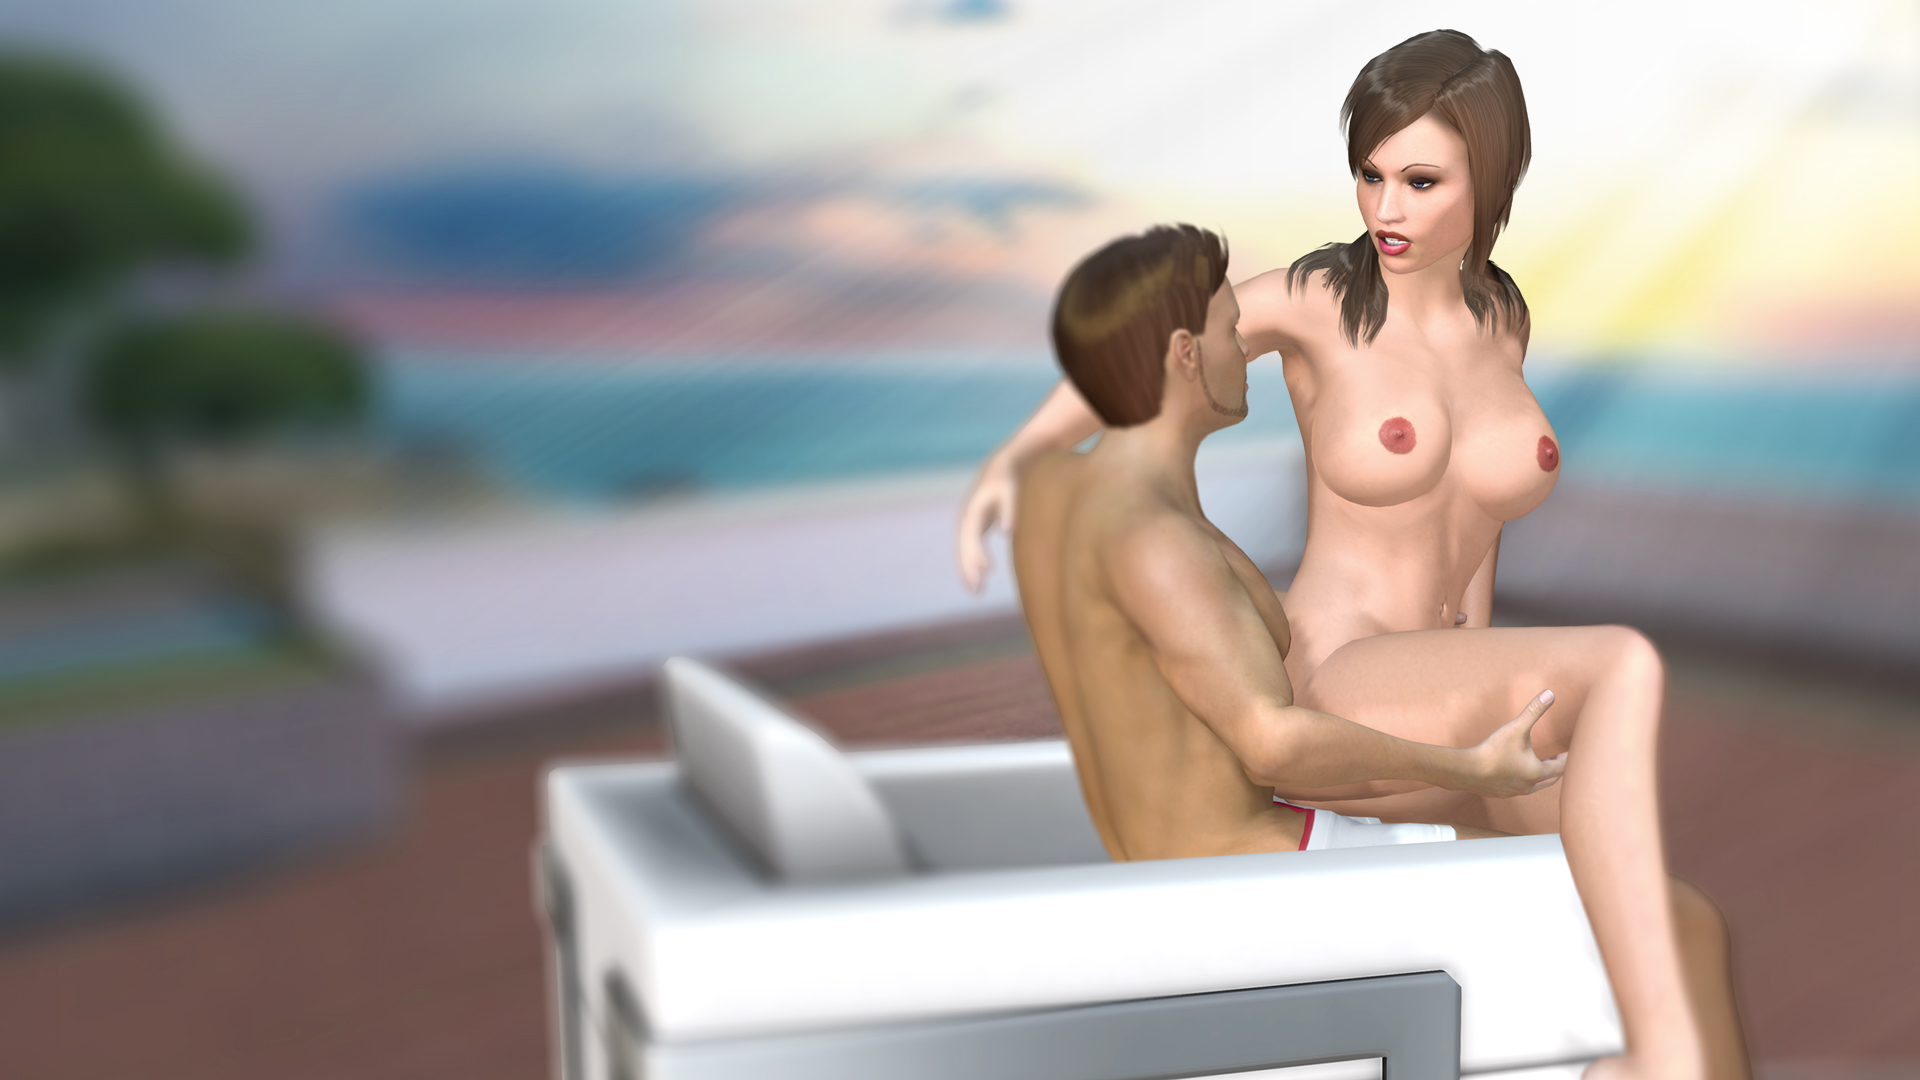 3d sexchat sex photo